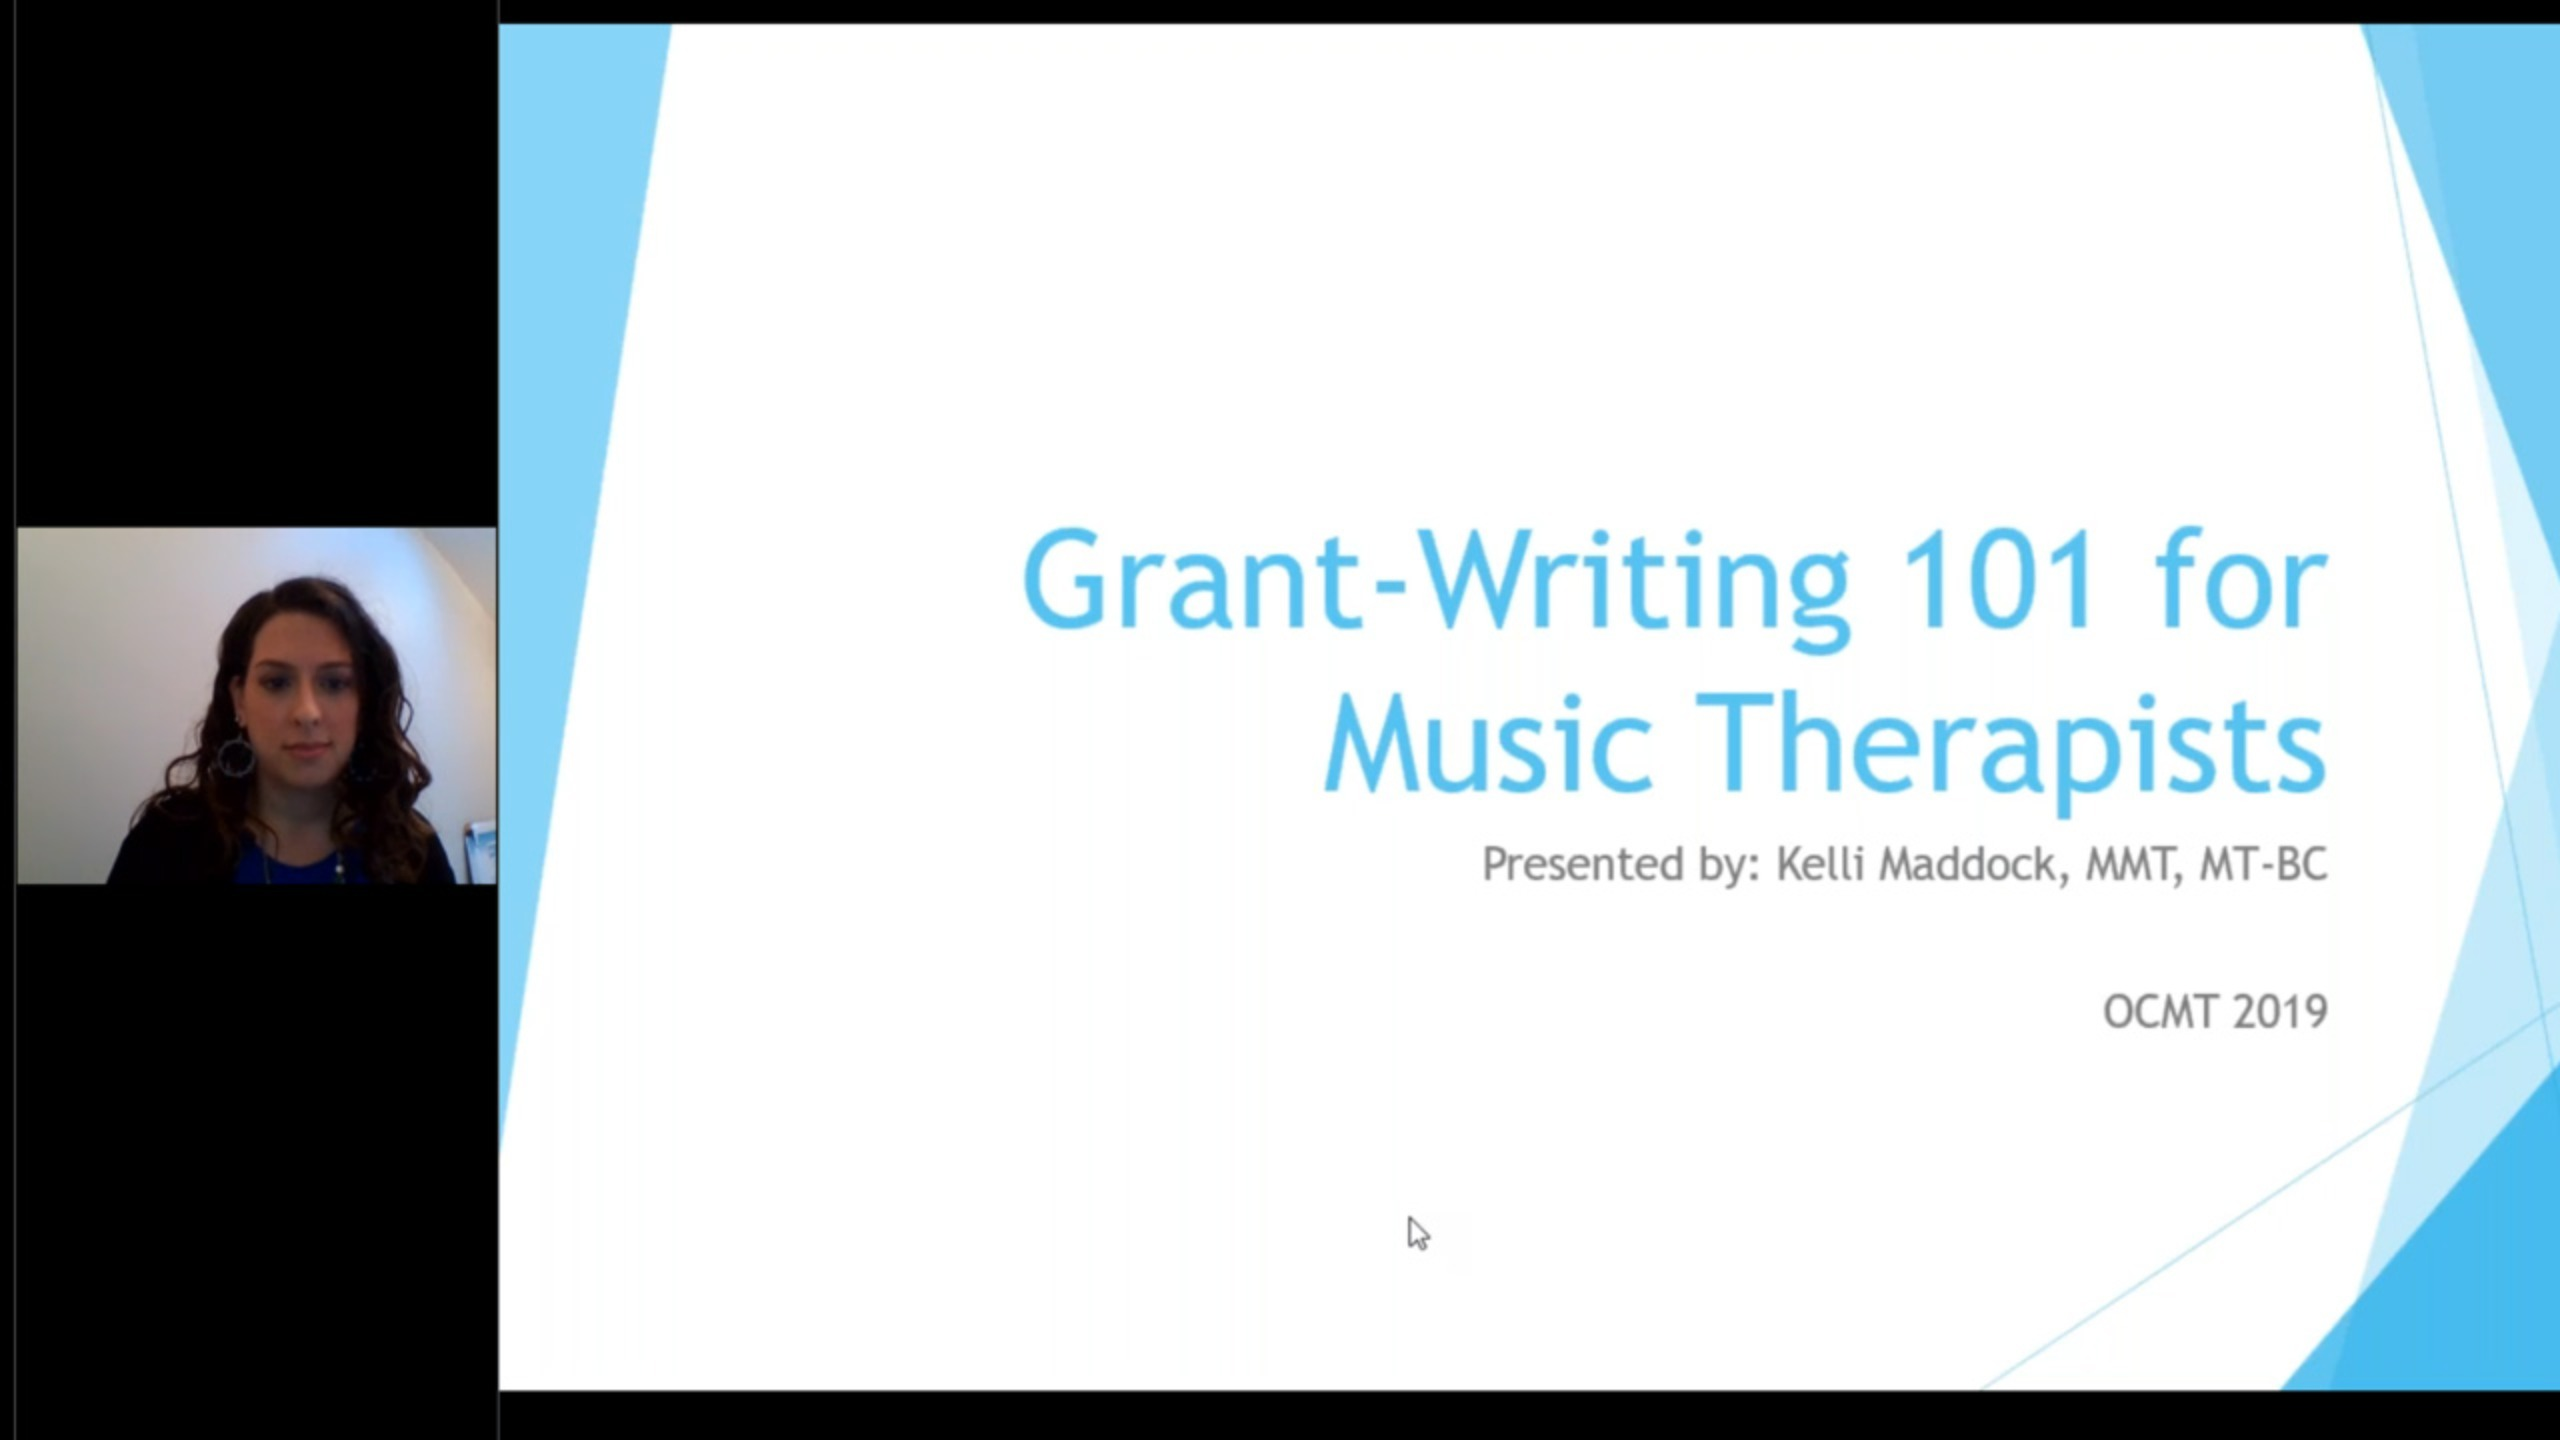 Grant-Writing 101 for Music Therapists